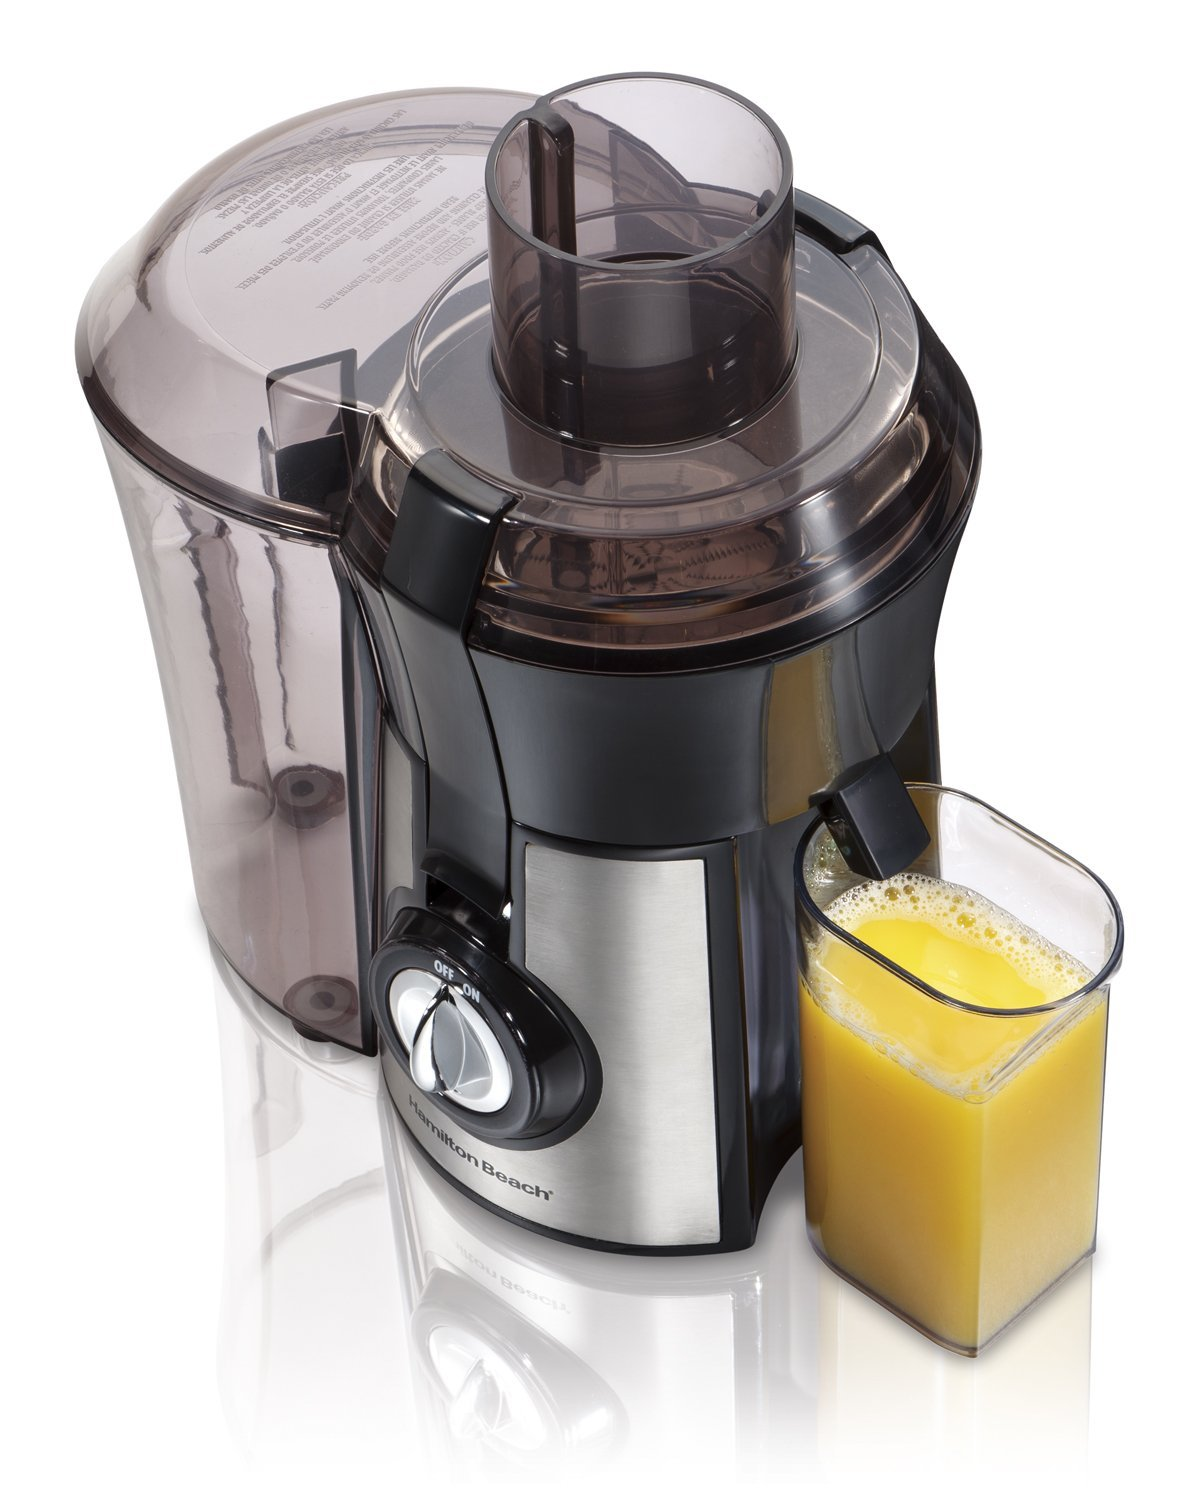 Hamilton Beach 040094922635 (67608A) Juicer, Electric, 800 Watt, Easy to Clean, BPA Free, Large, Silver (Renewed) by Hamilton Beach (Image #1)